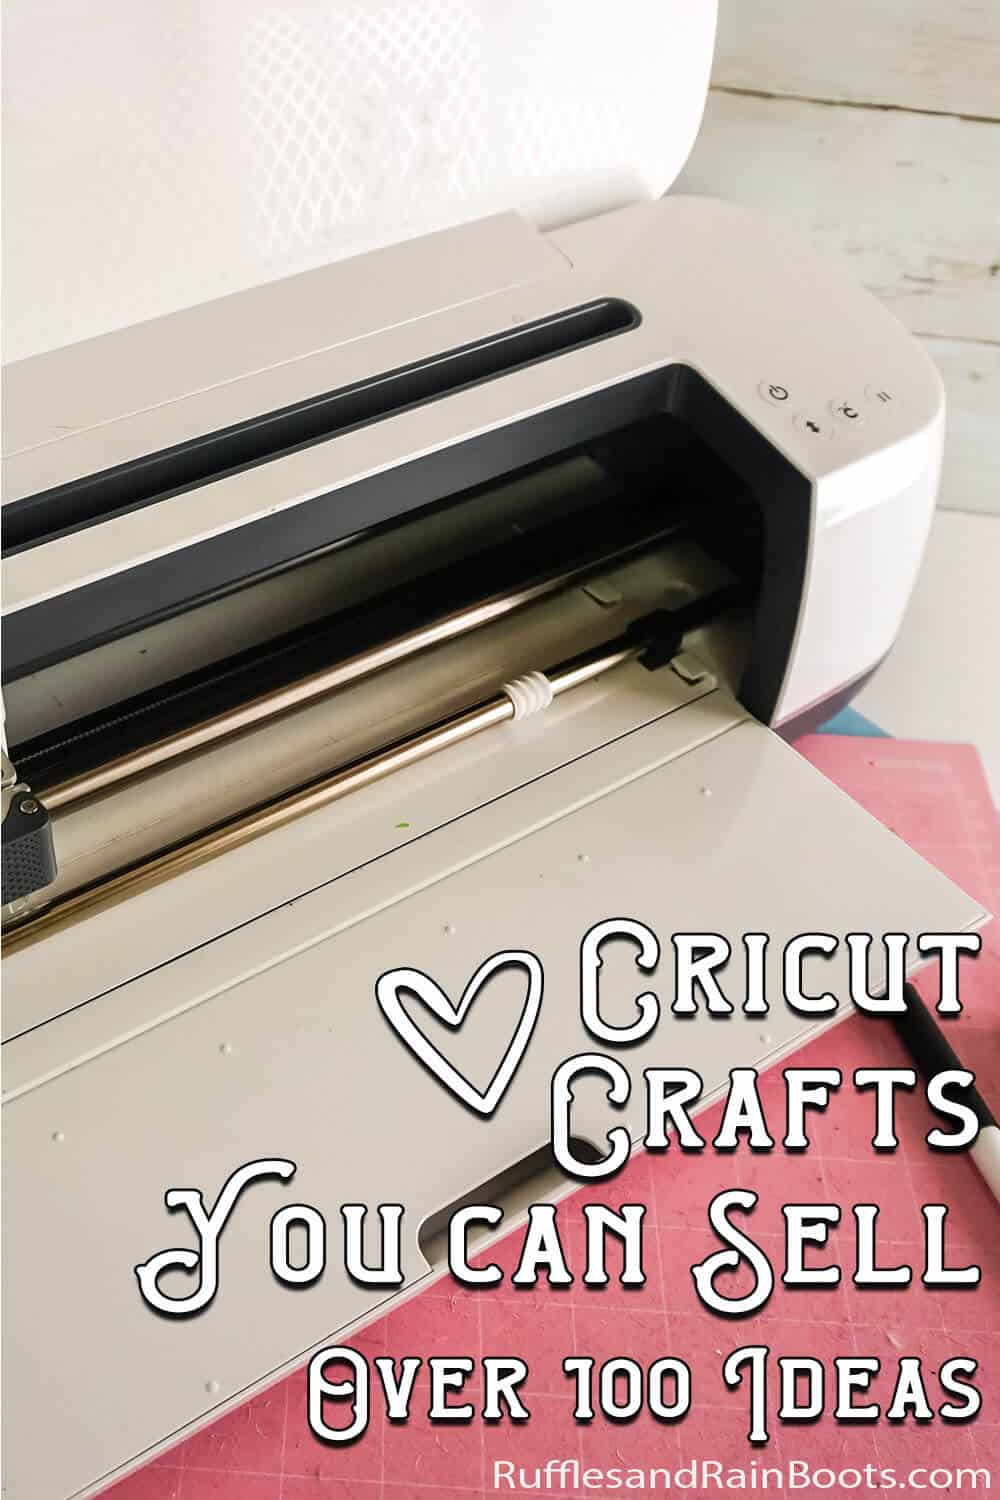 overhead view of cricut cutting machine with text which reads cricut crafts you can sell over 100 ideas